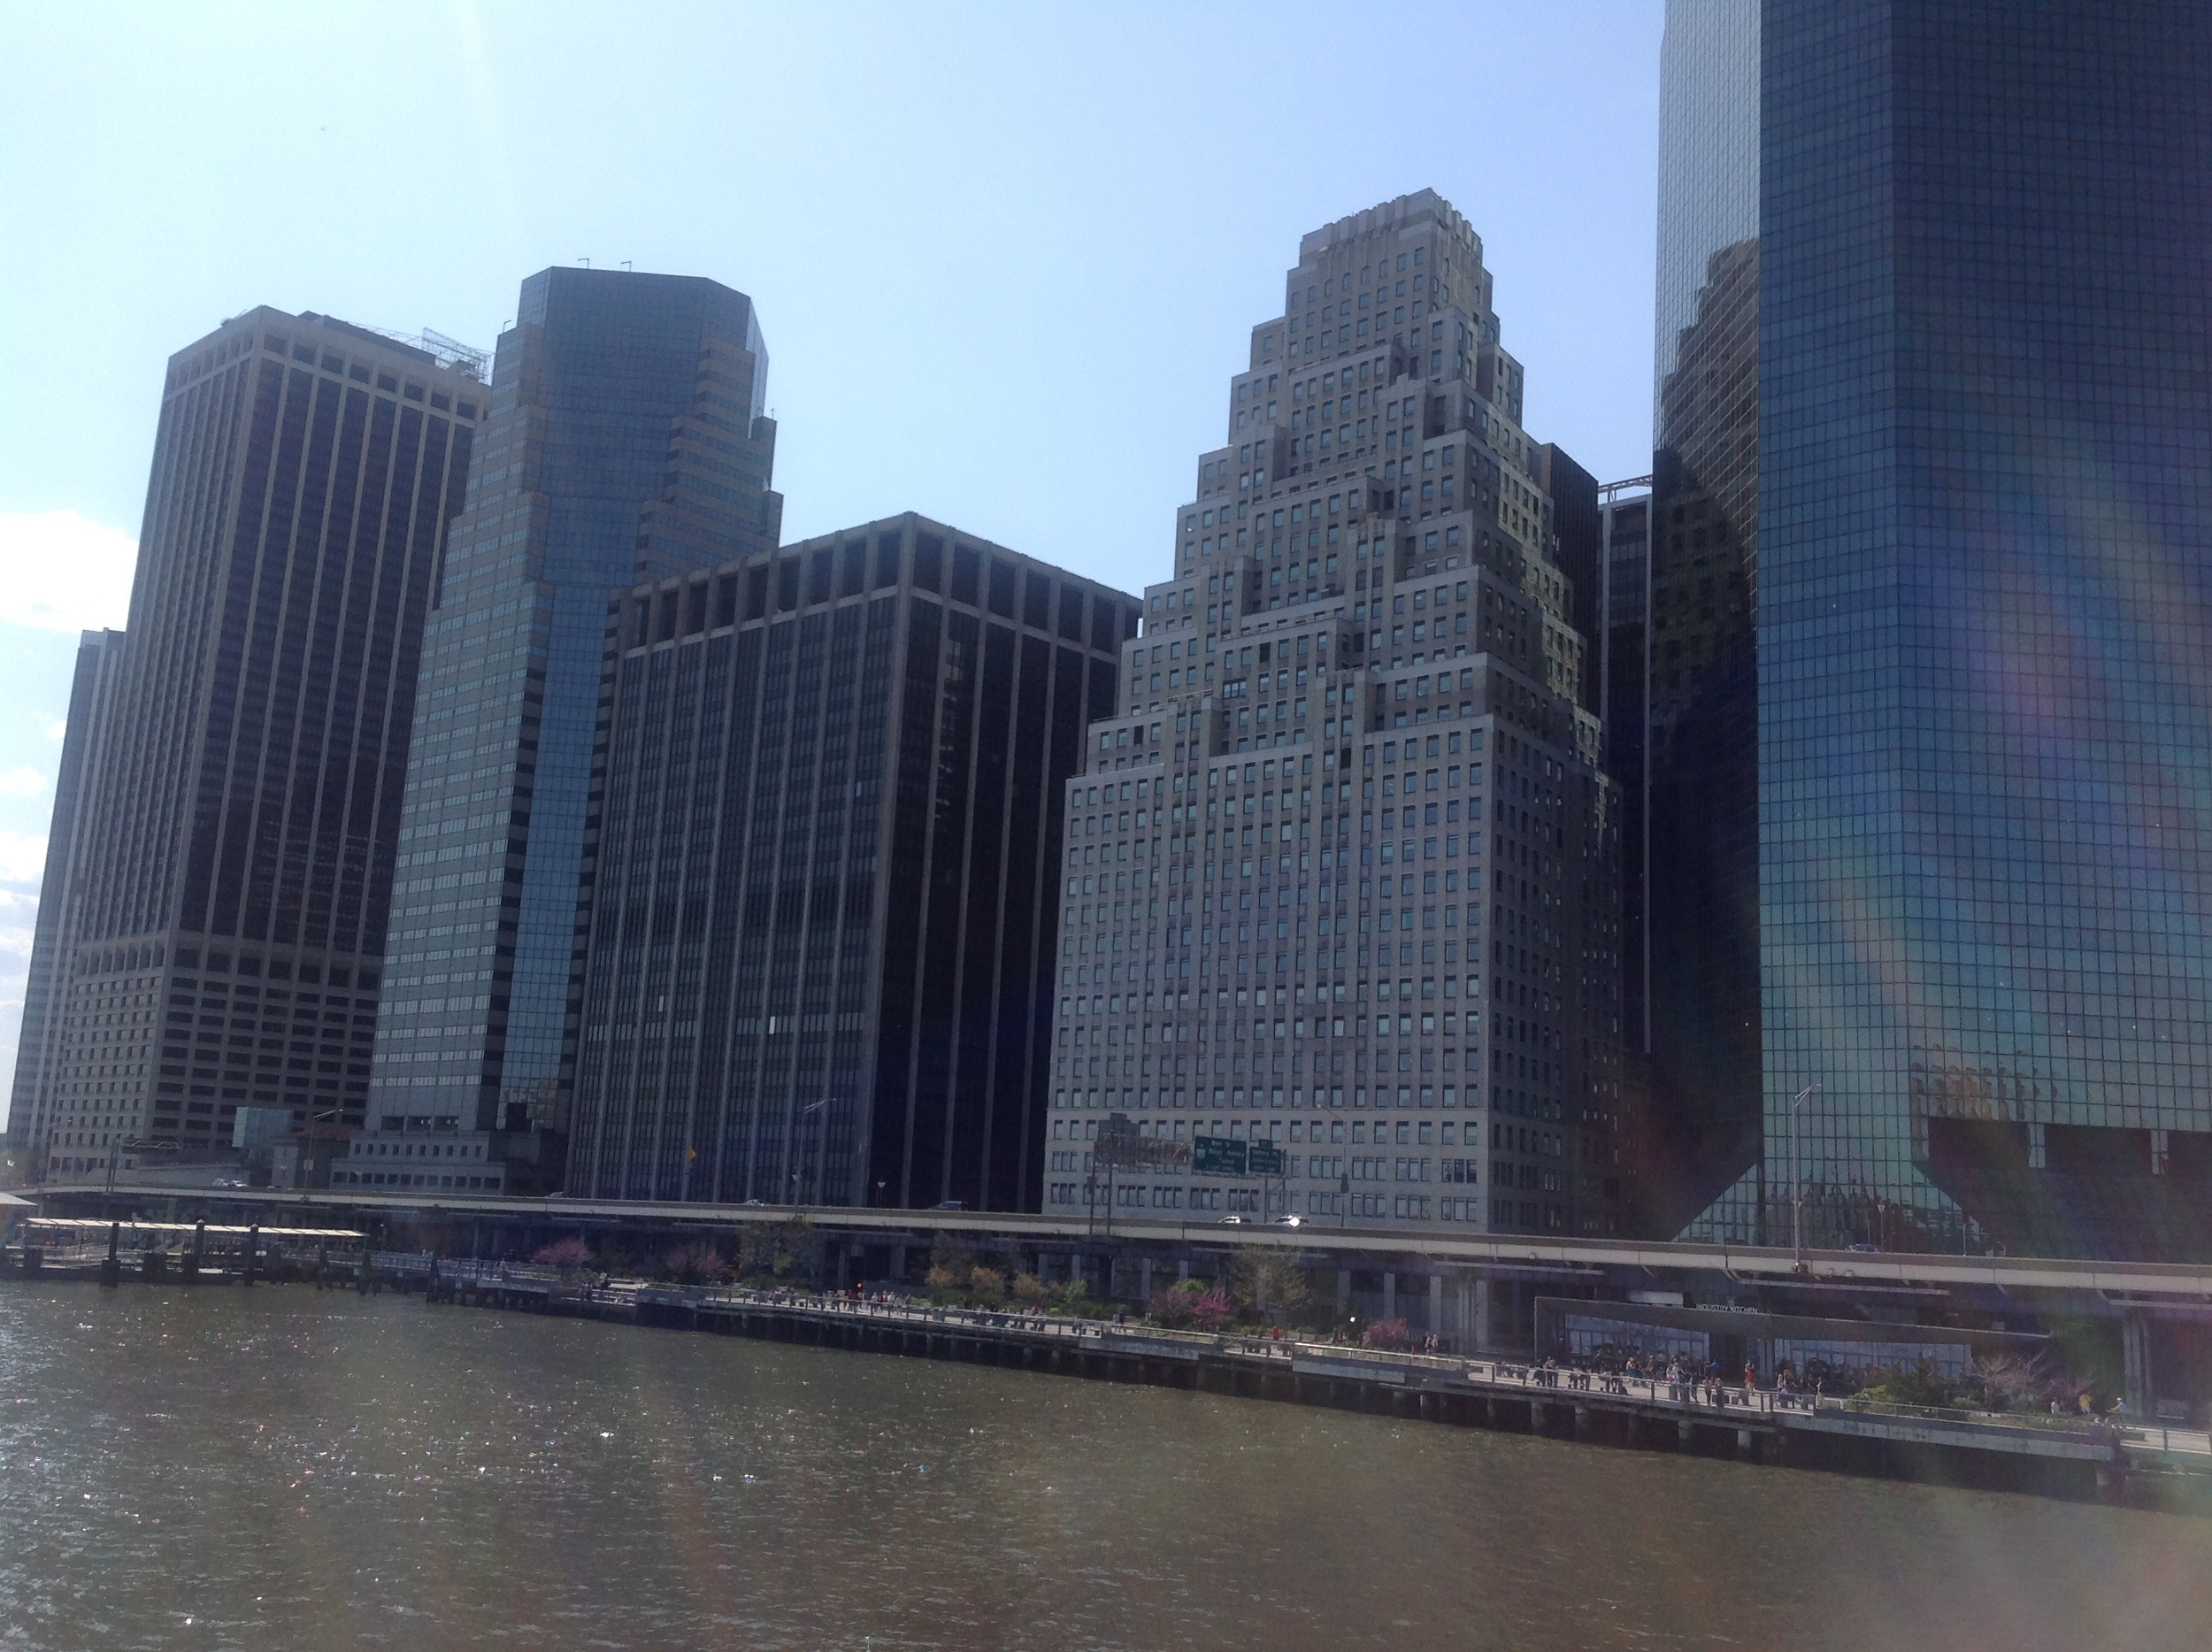 manhattan east river waterfront, looking south from south street seaport, may 2015